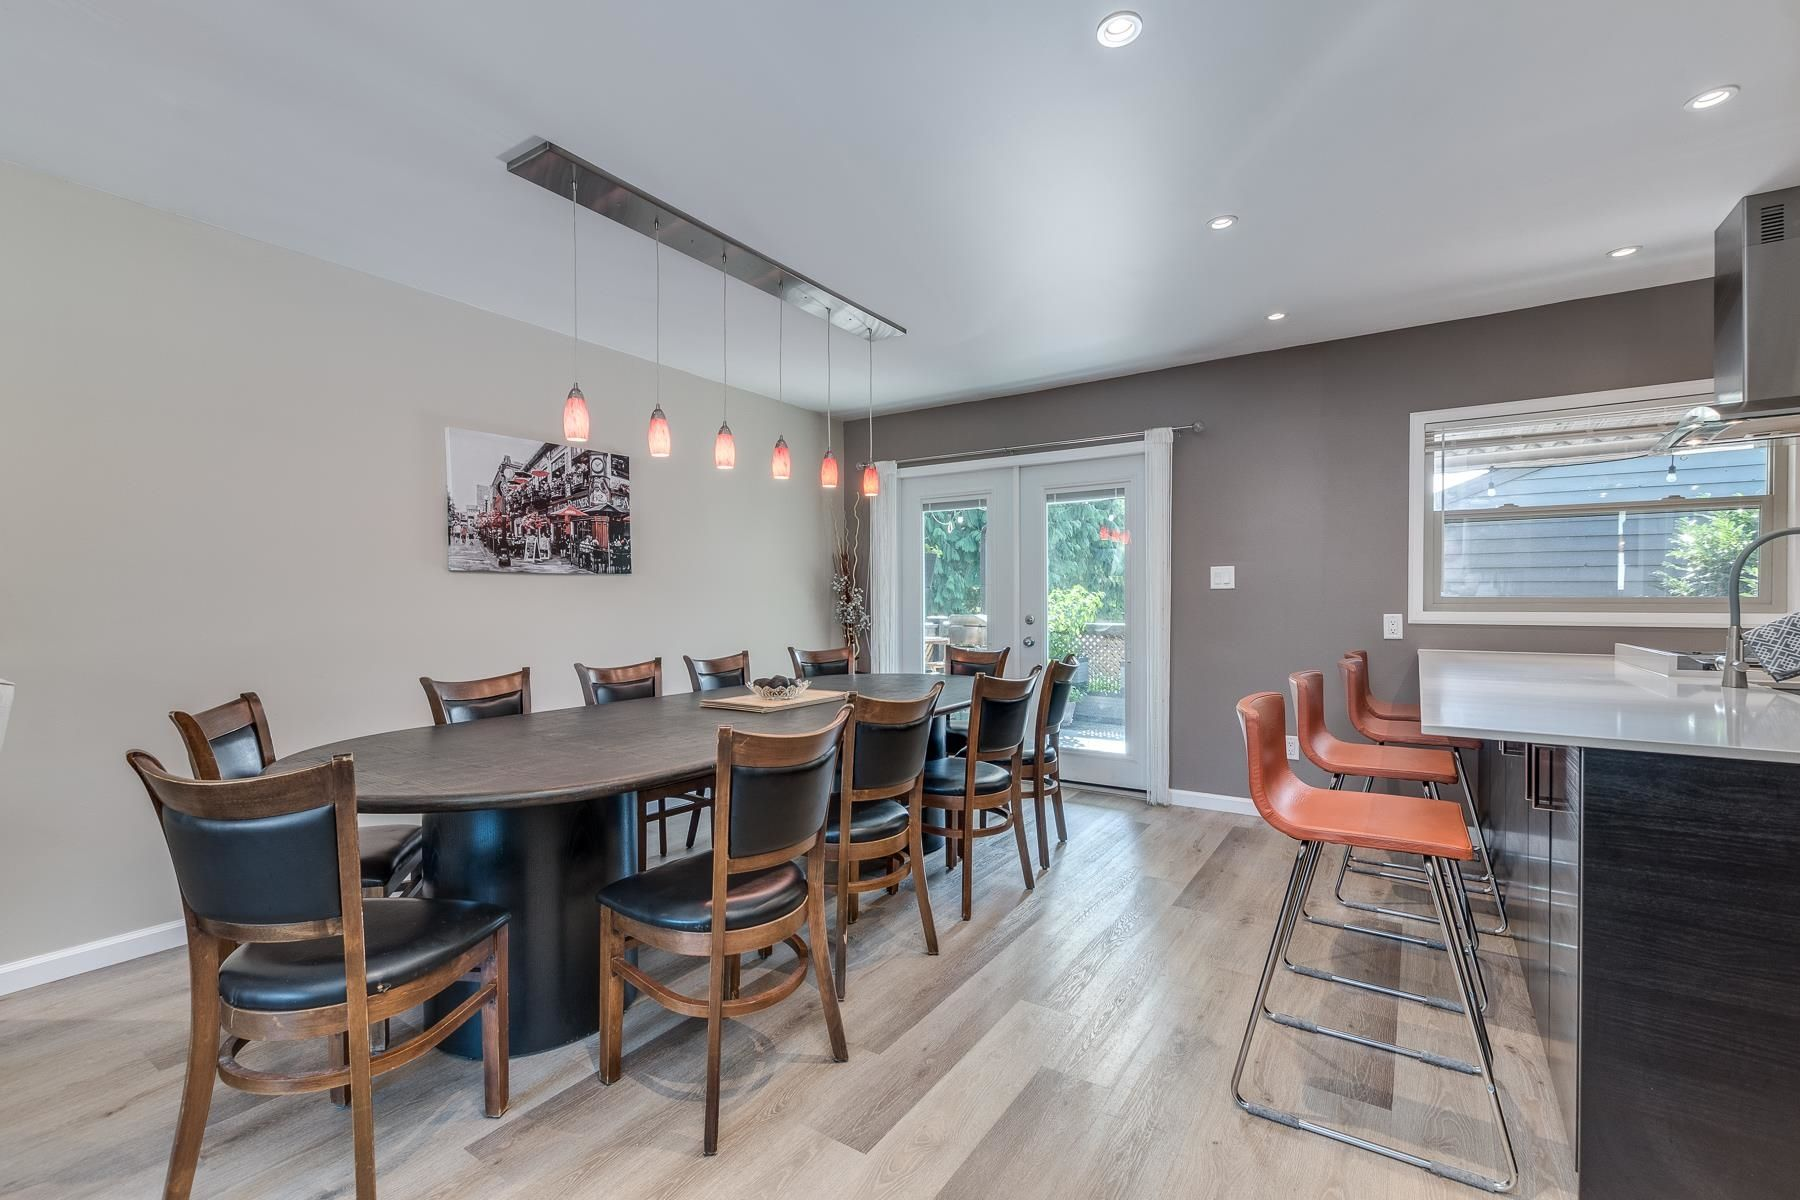 Photo 9: Photos: 3671 SOMERSET Street in Port Coquitlam: Lincoln Park PQ House for sale : MLS®# R2610216